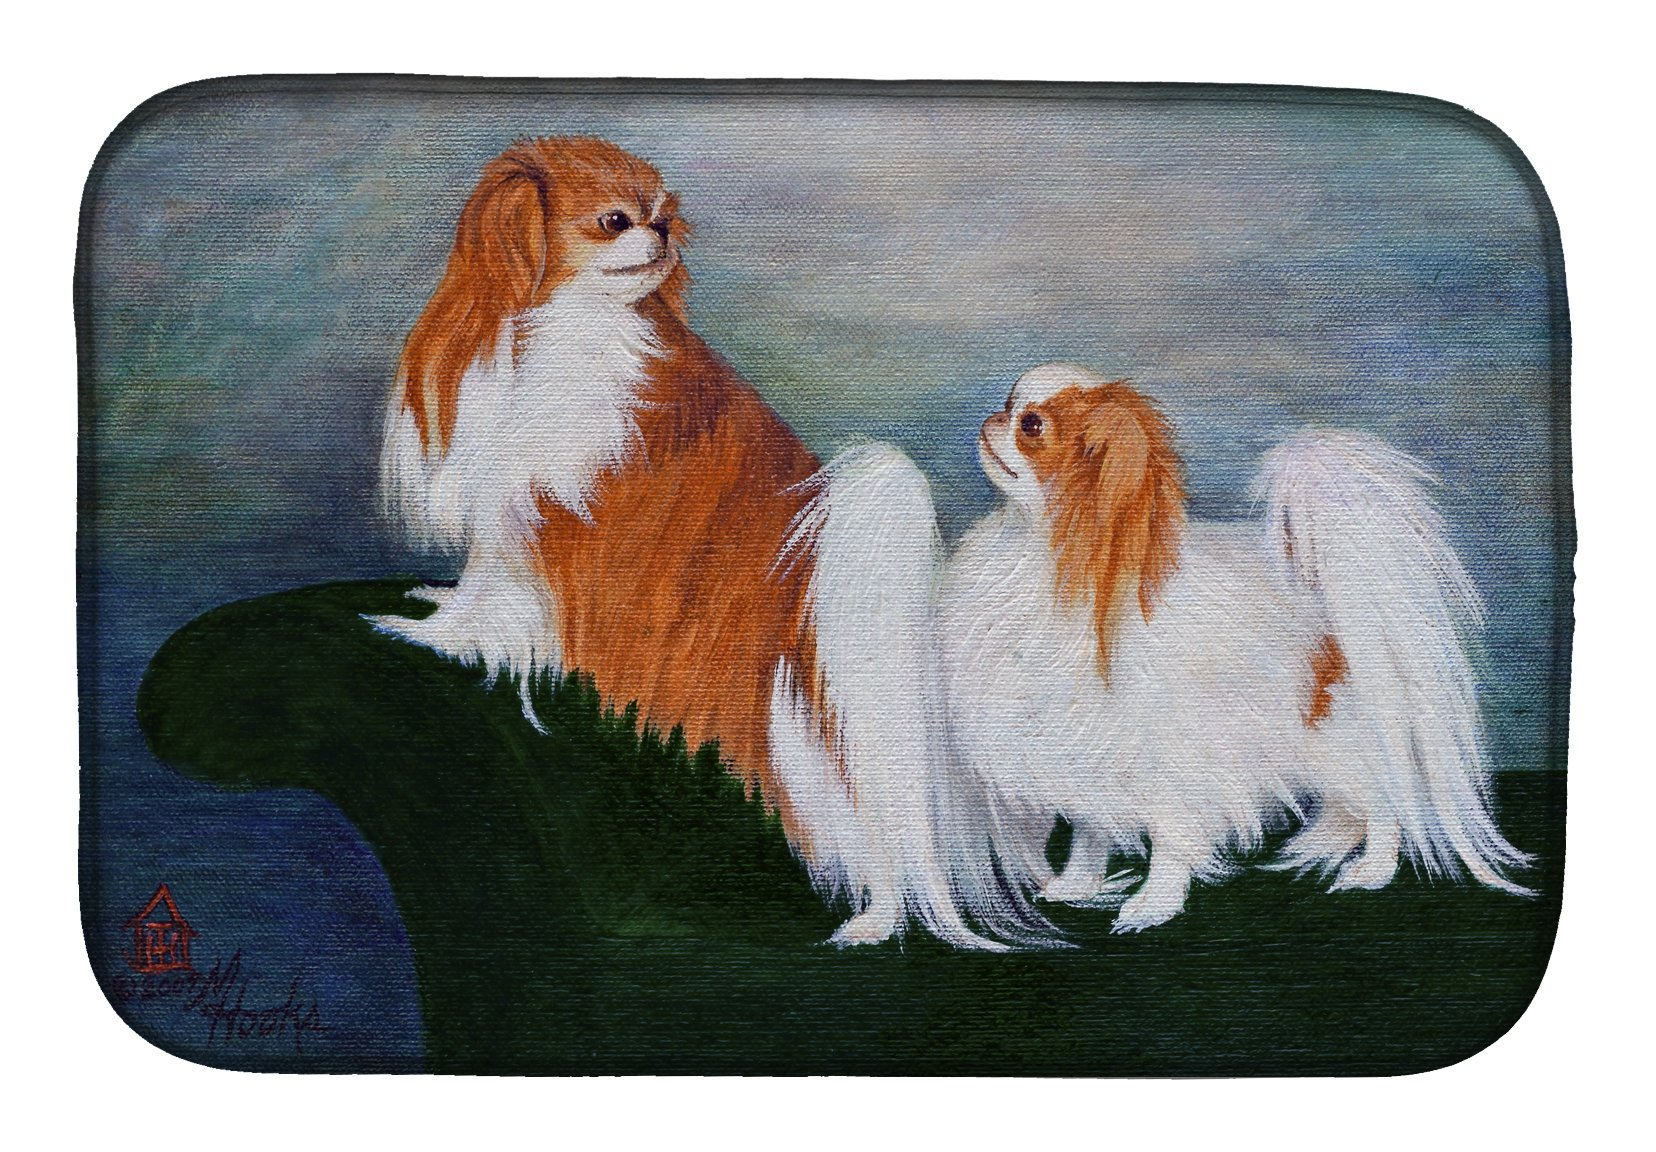 Japanese Chin Standing on my tail Dish Drying Mat MH1059DDM by Caroline's Treasures